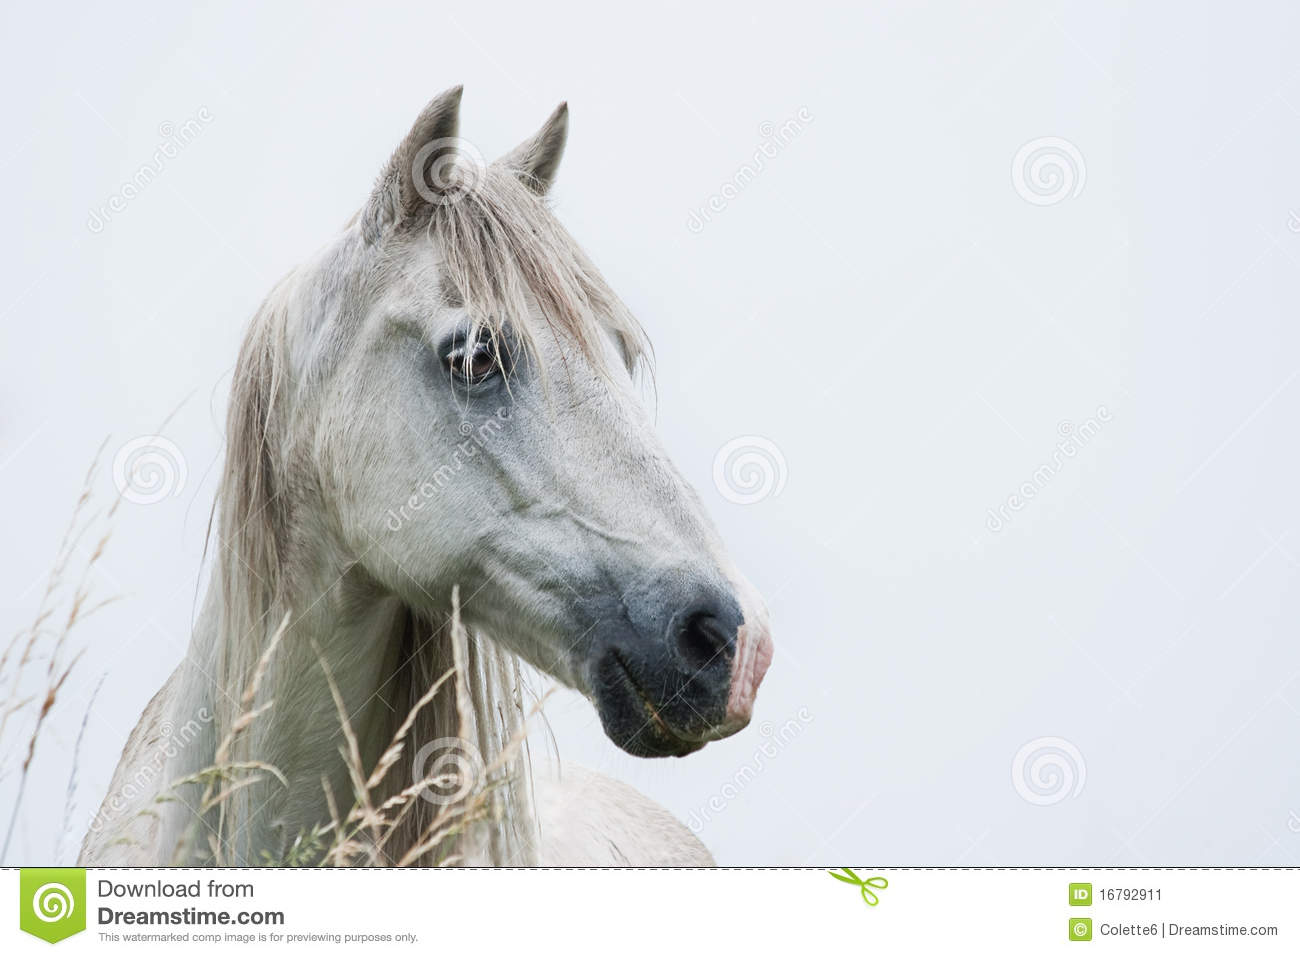 33 987 Head White Horse Photos Free Royalty Free Stock Photos From Dreamstime